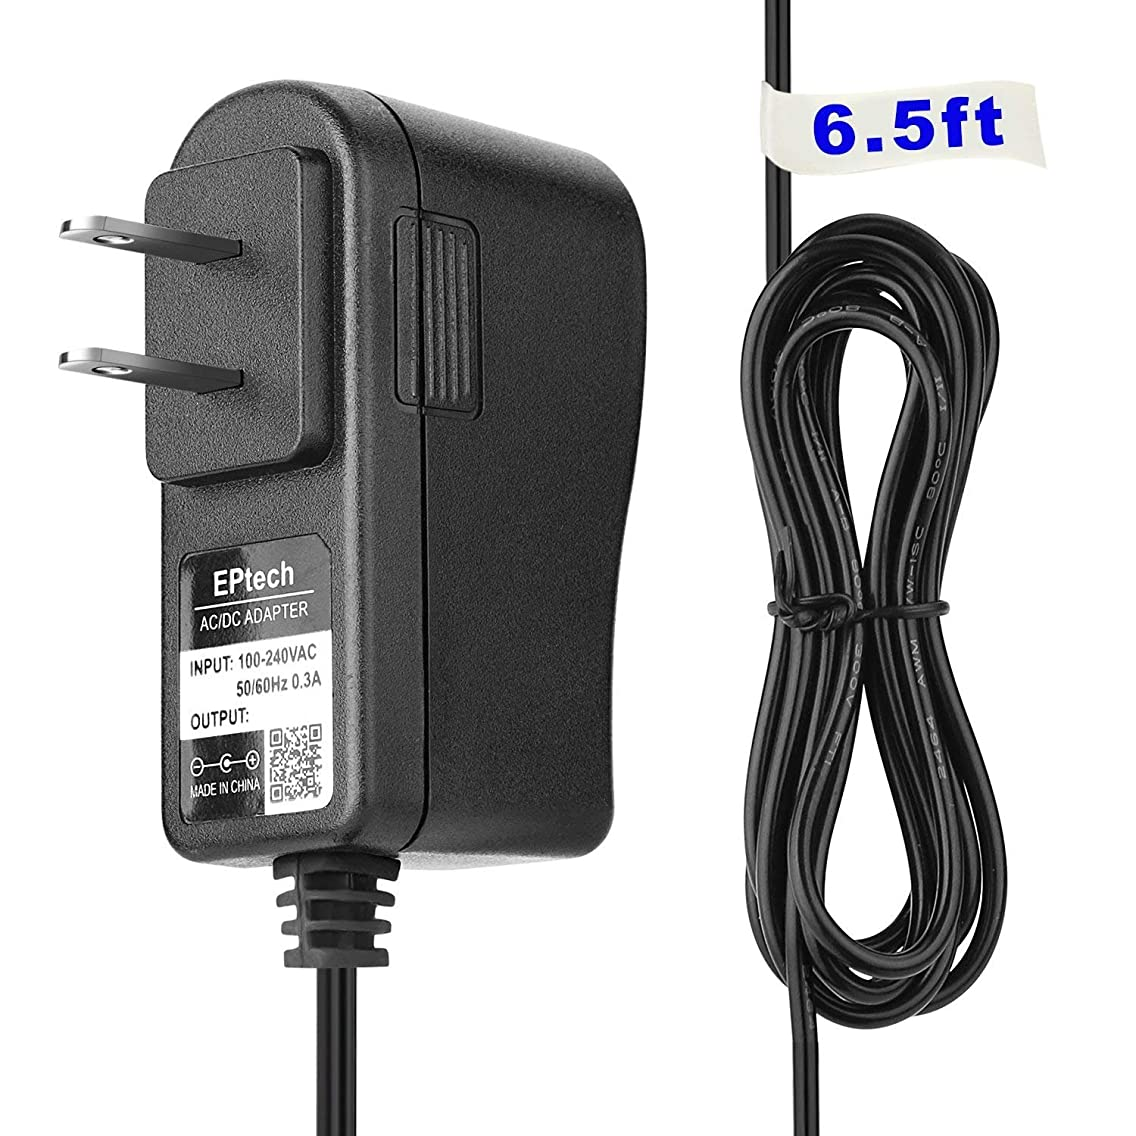 AC/DC Adapter for Panasonic BL-C10 BLC10 BL-C10A BLC10A Network IP Camera Wireless Internet Security Web Cam Remote Video Monitoring System Webcam and Pet Cam Power Supply Cord Cable Charger